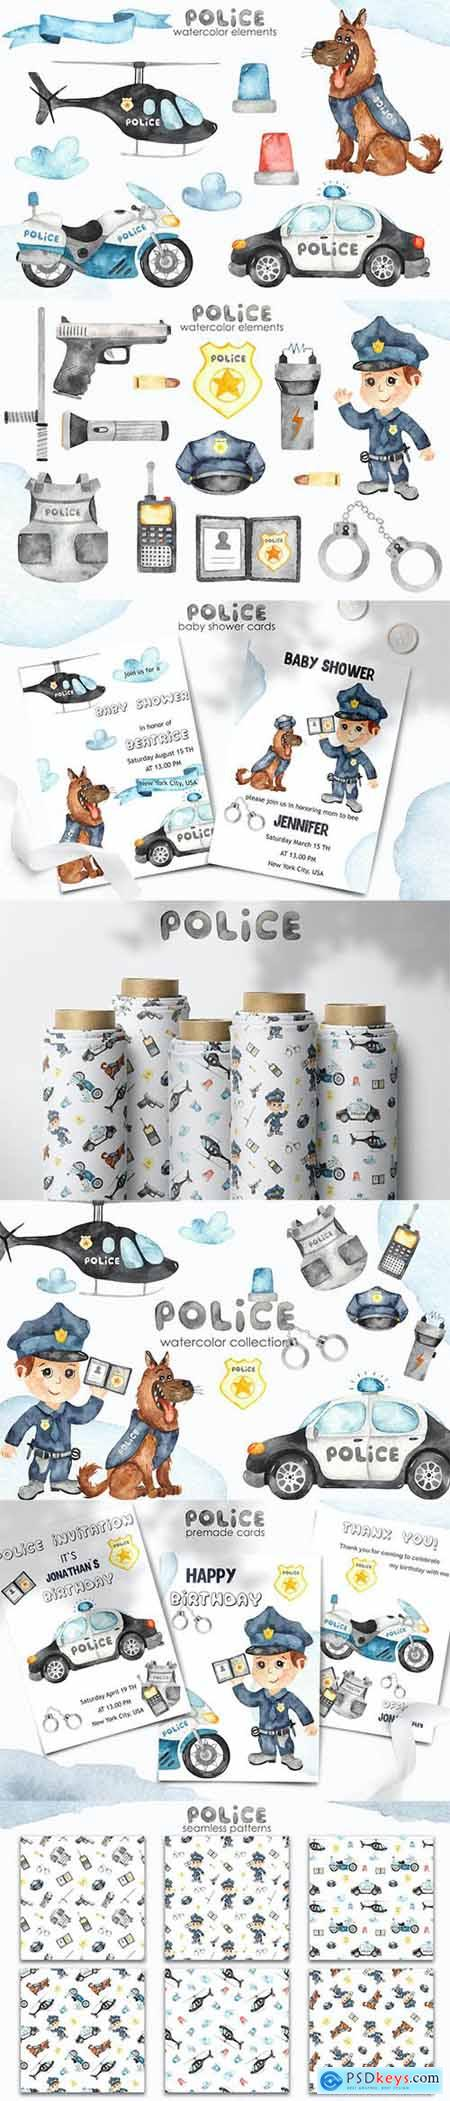 Watercolor Police Clipart, cards, patterns